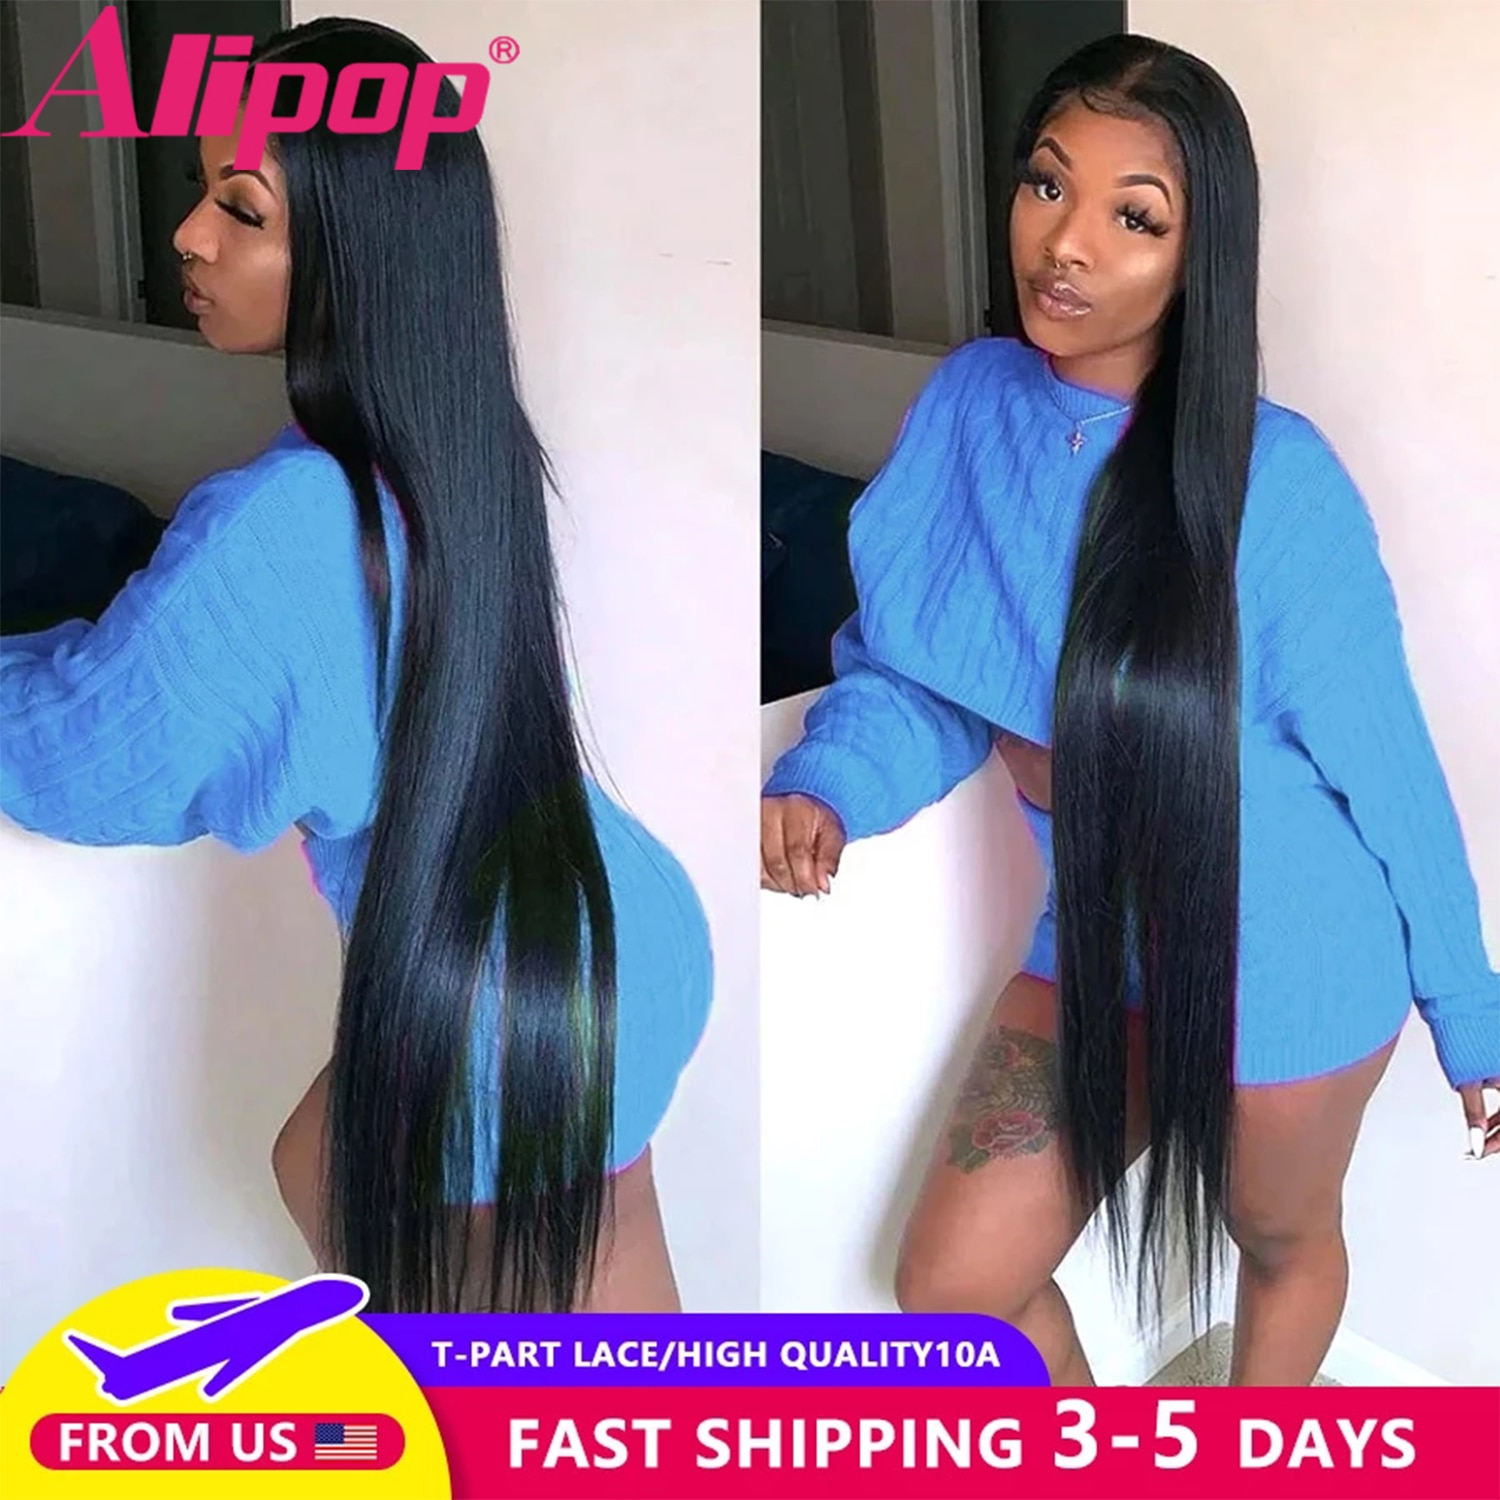 Straight Human hair Wigs Straight Lace Front Wig For African American Women HD Transparent Lace Frontal Wig T-Part